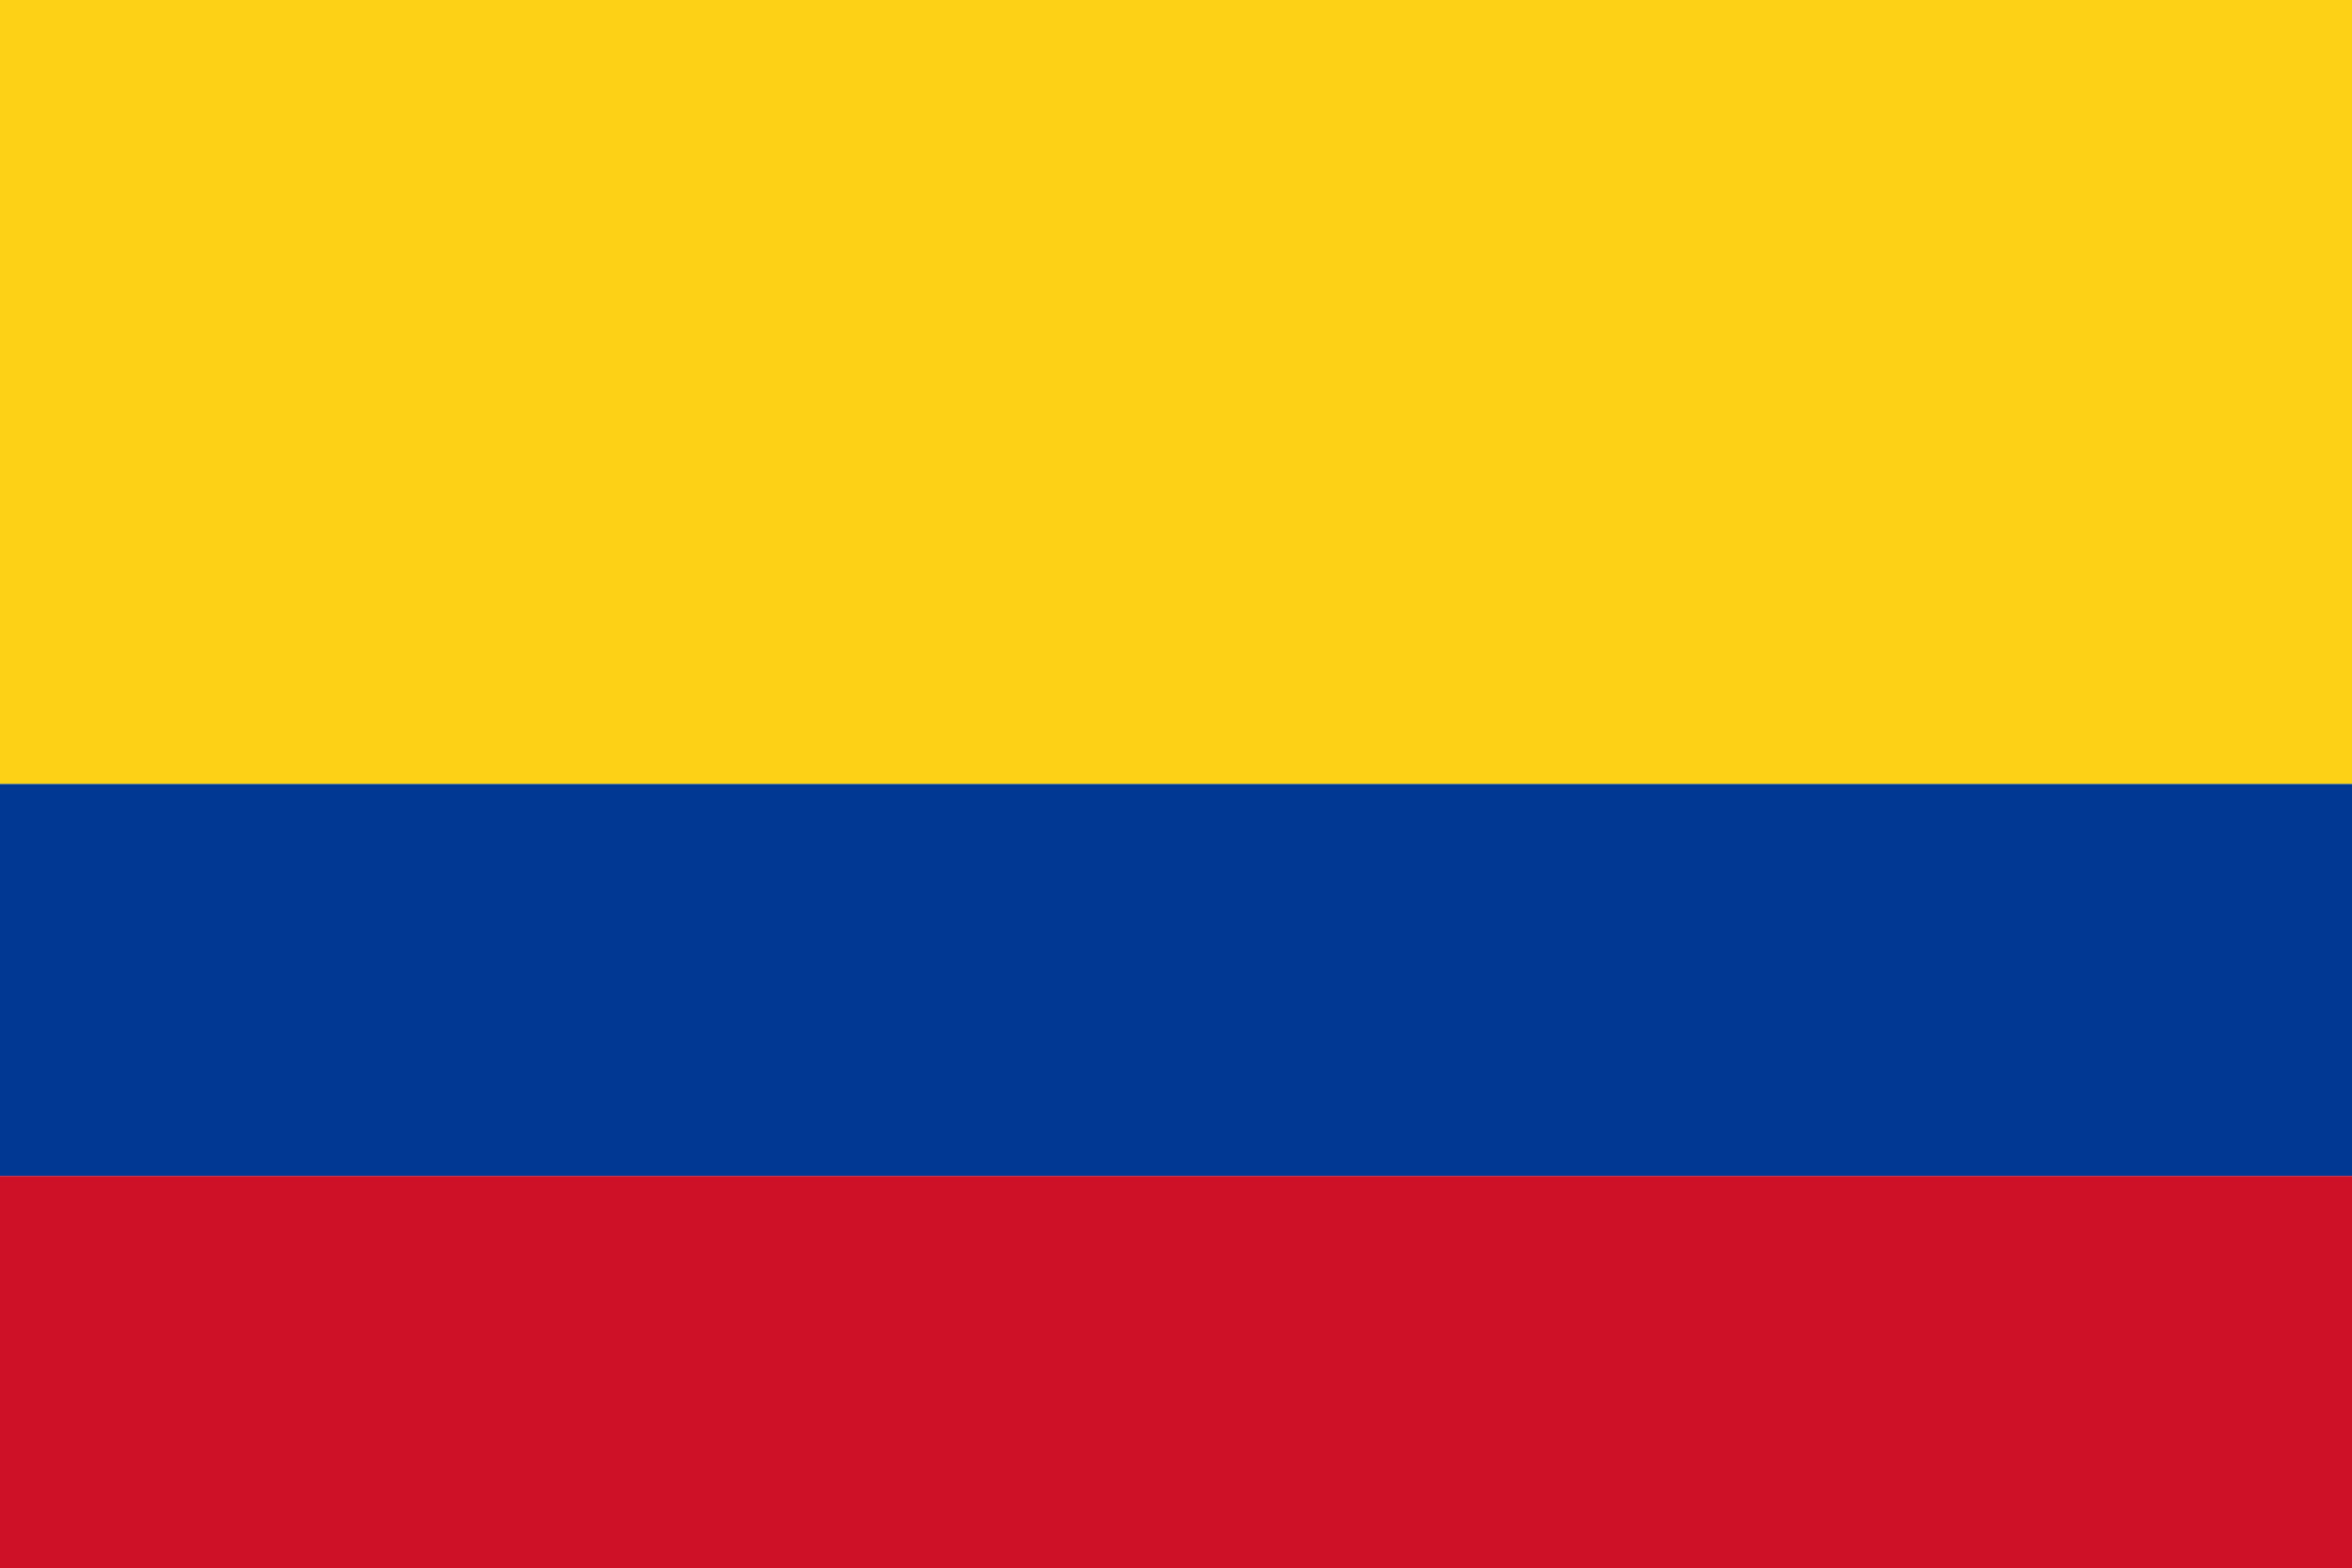 colombiaflag.png